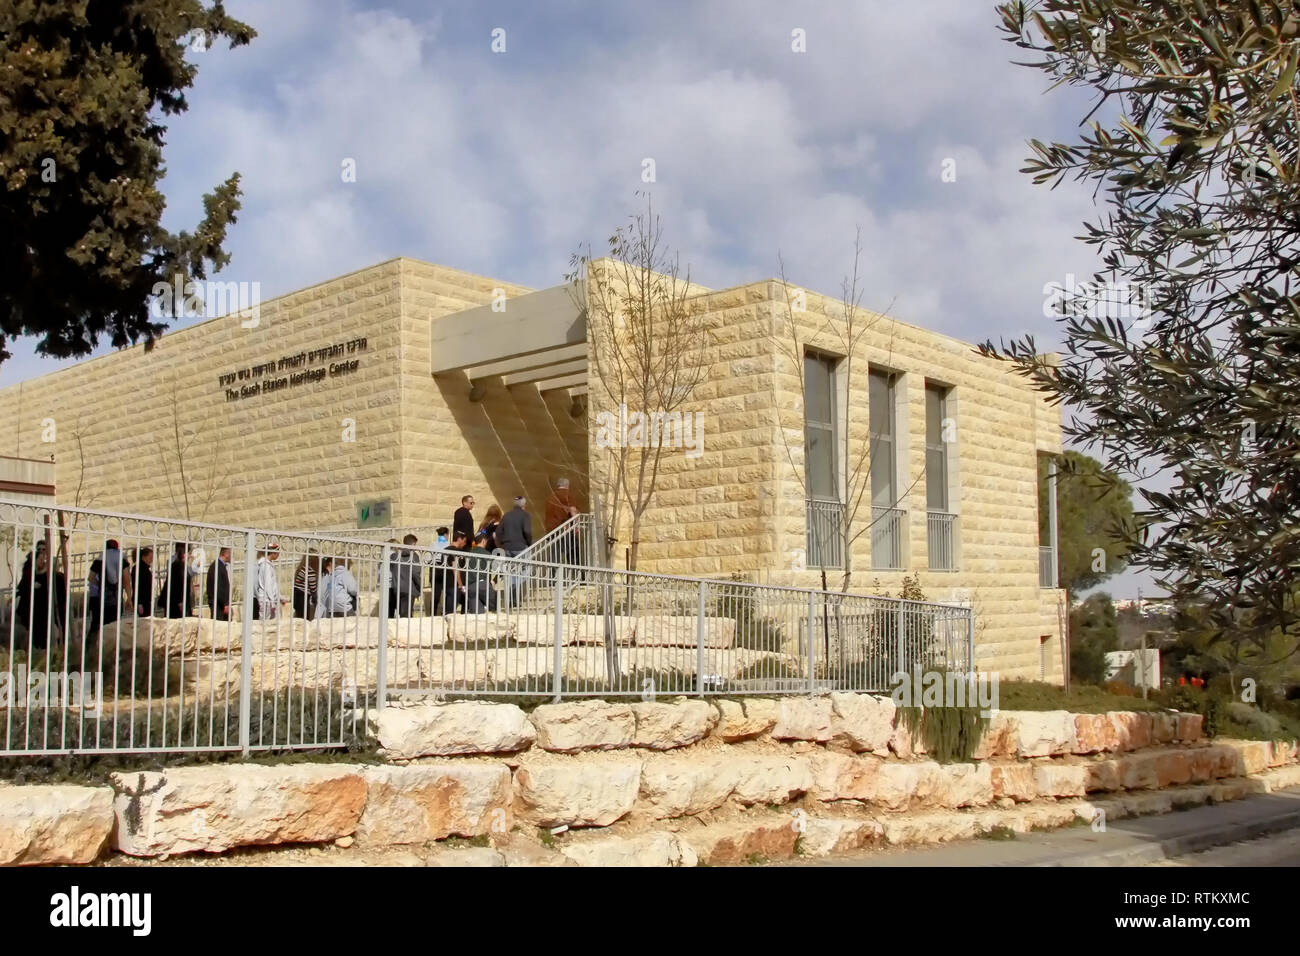 A group of people enter the Gush Etzion Heritage Center in Kfar Etzion, Israel. - Stock Image